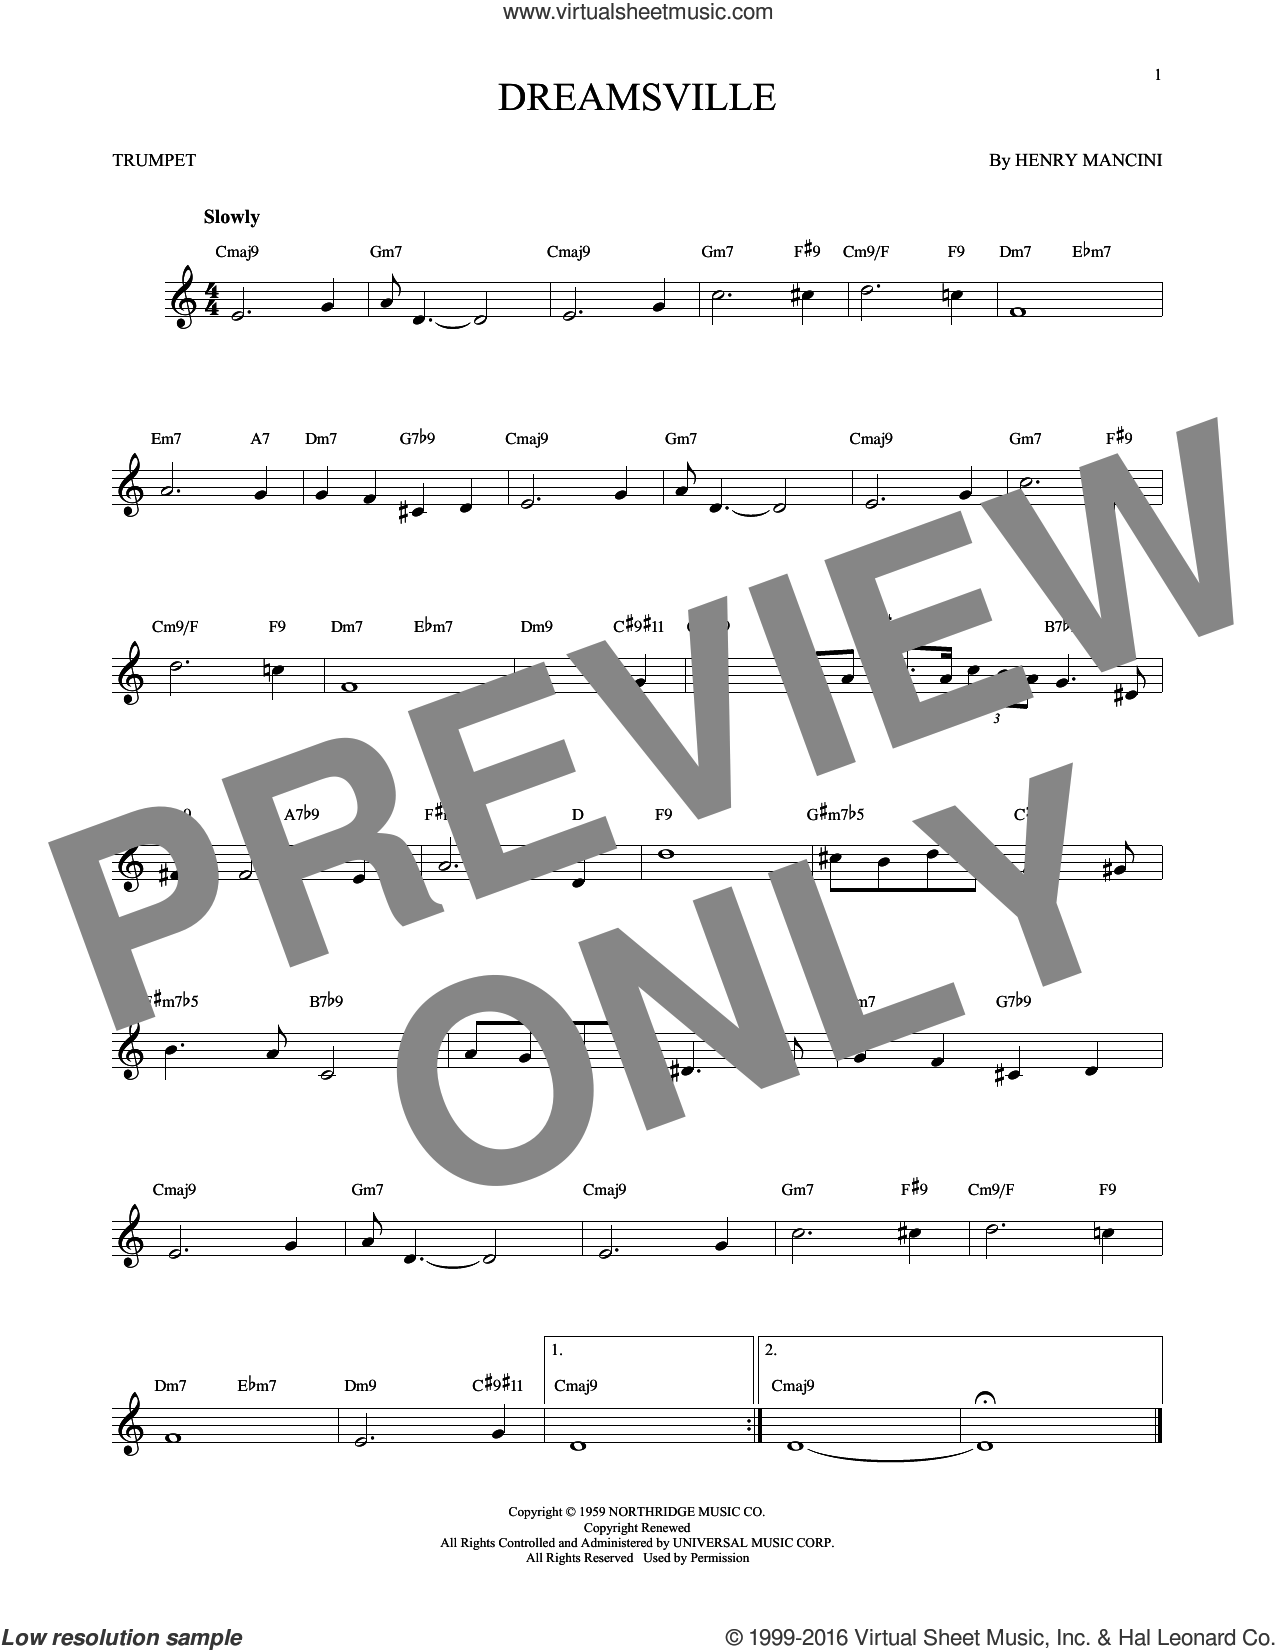 Dreamsville sheet music for trumpet solo by Henry Mancini, intermediate skill level